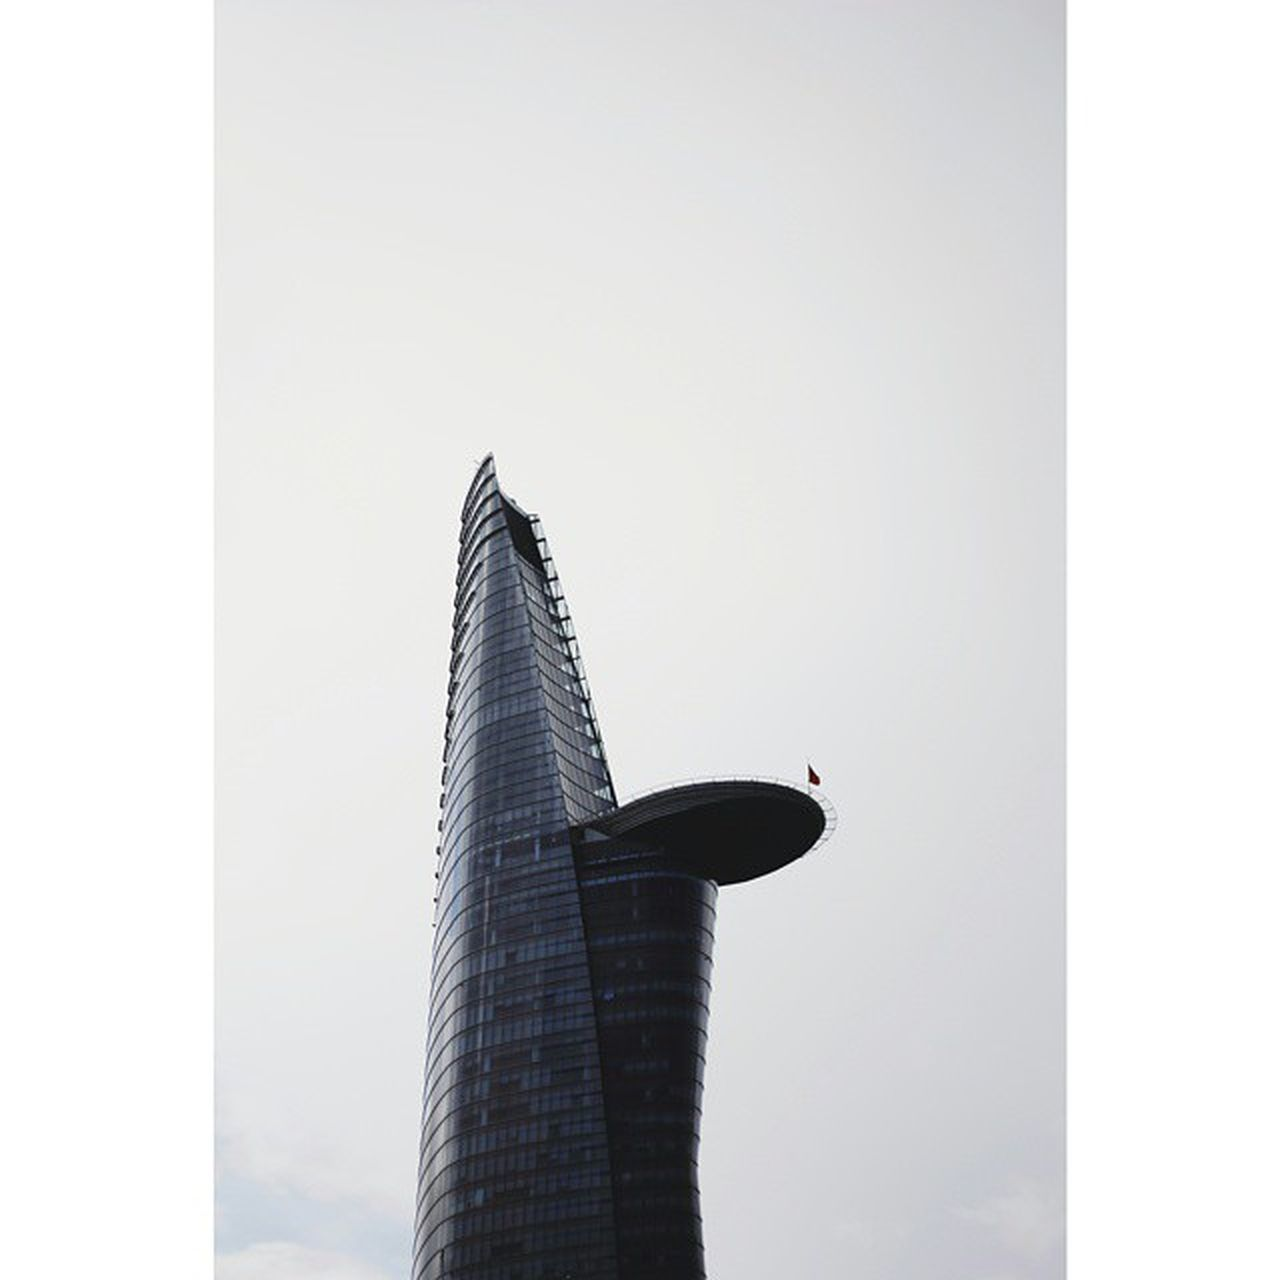 architecture, tower, built structure, building exterior, day, modern, no people, skyscraper, sky, outdoors, clear sky, flying, city